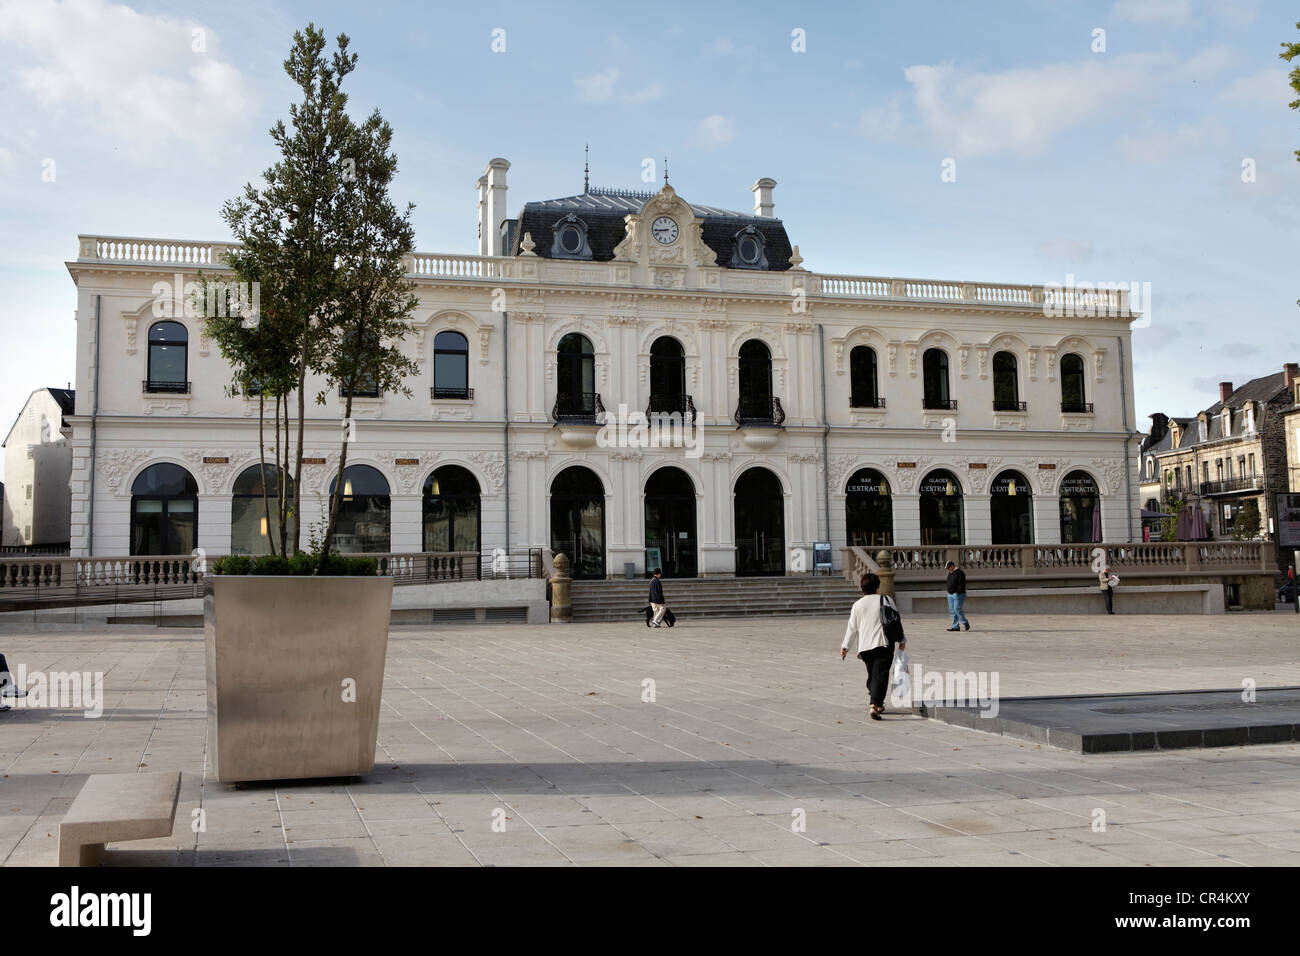 The theatre of Brive la Gaillarde, Correze, Limousin, France, Europe - Stock Image